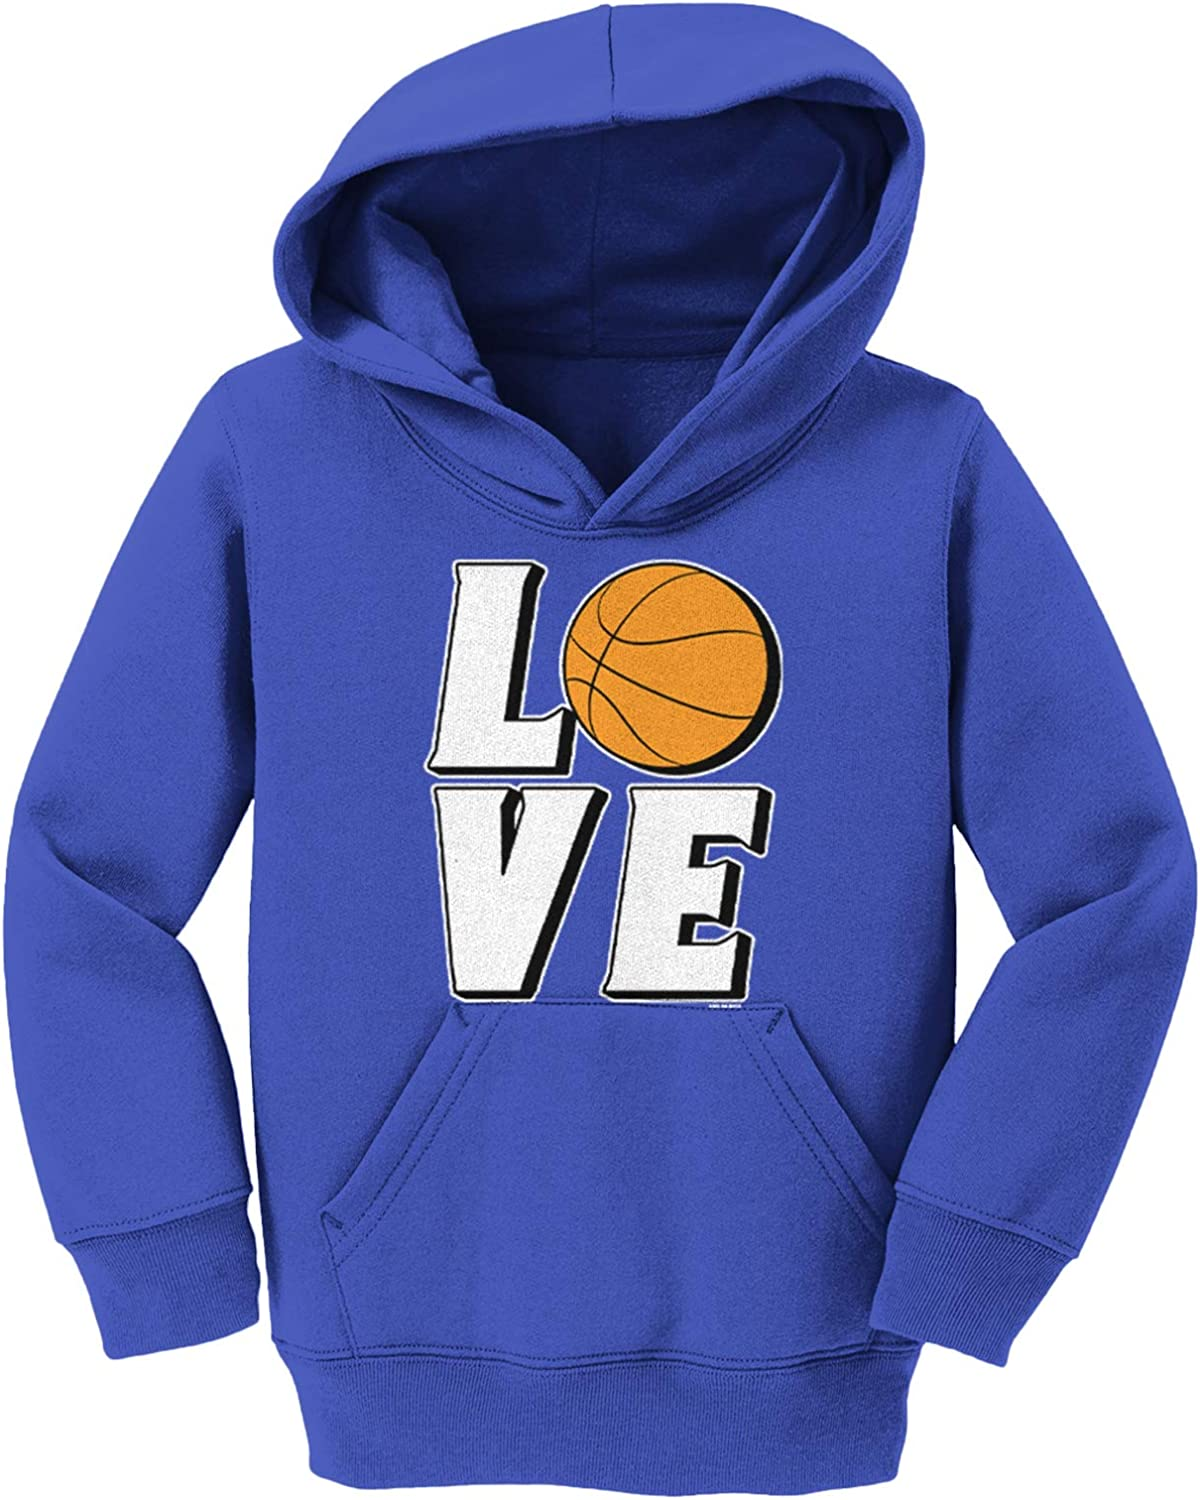 Love Basketball - Sports shopping Hoops Youth Toddler Fleece Hoodie Max 64% OFF